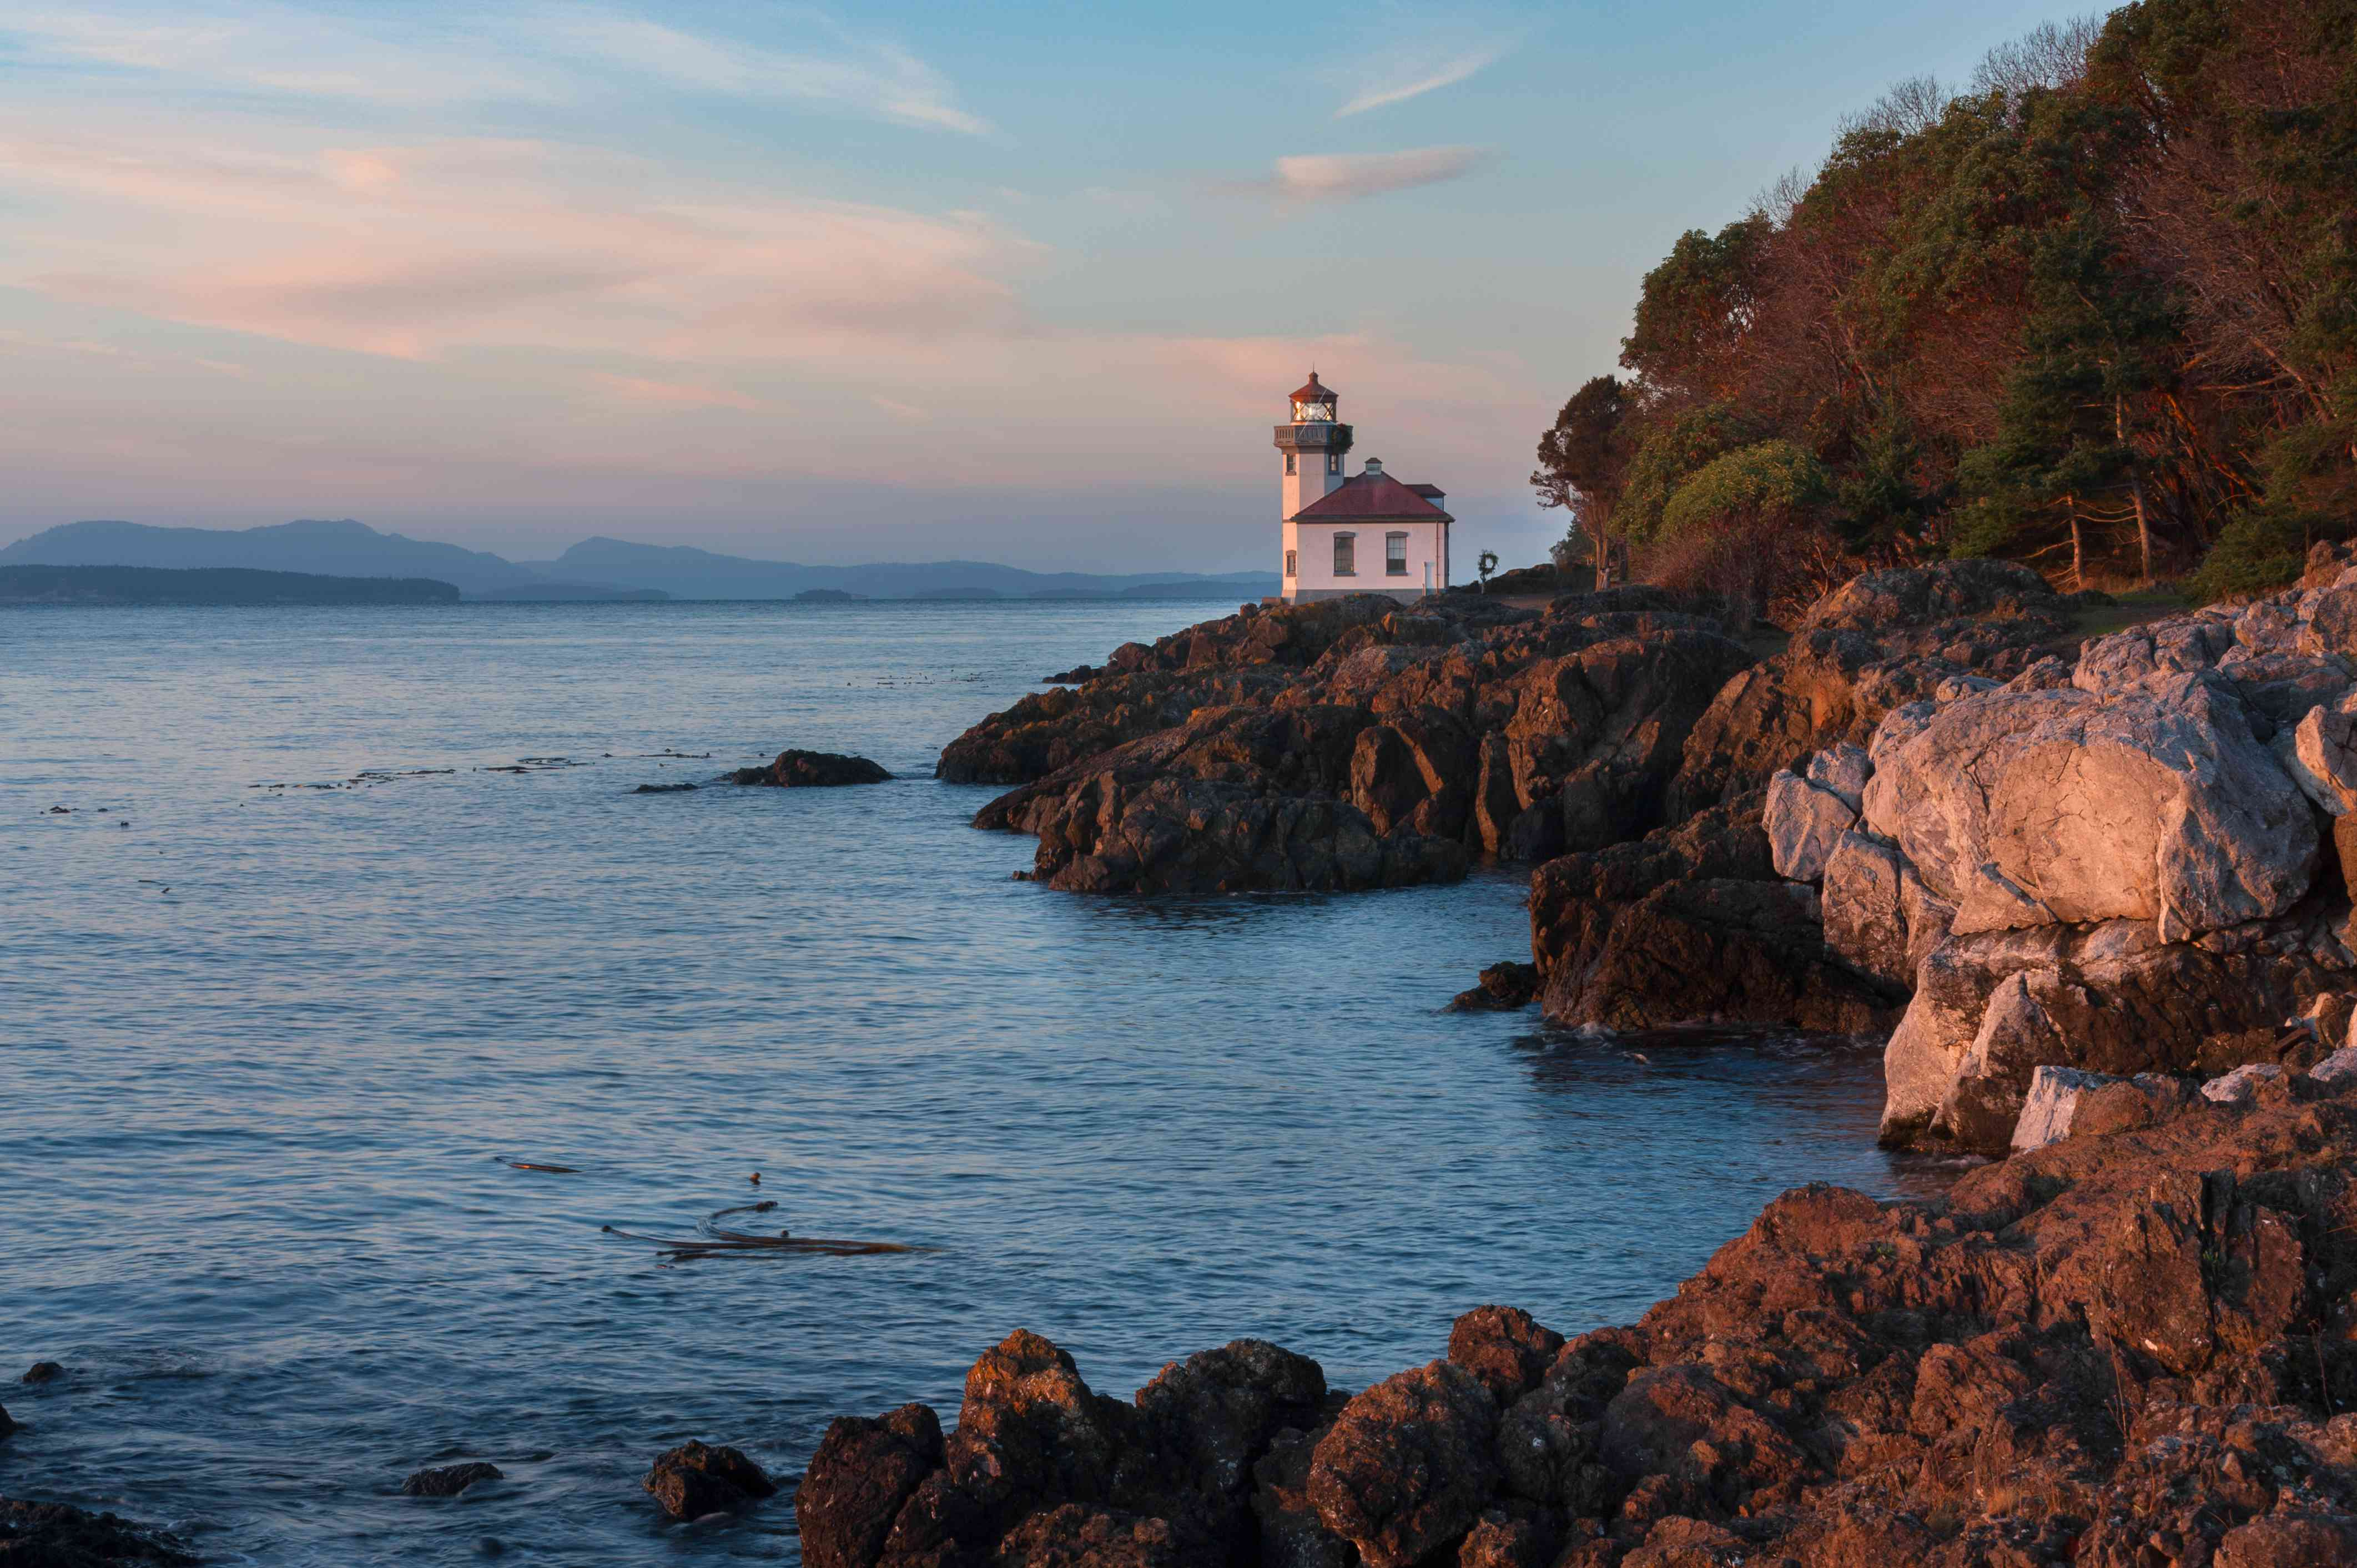 Scenic View Of Lime Kiln Lighthouse By Sea Against Sky On San Juan Island